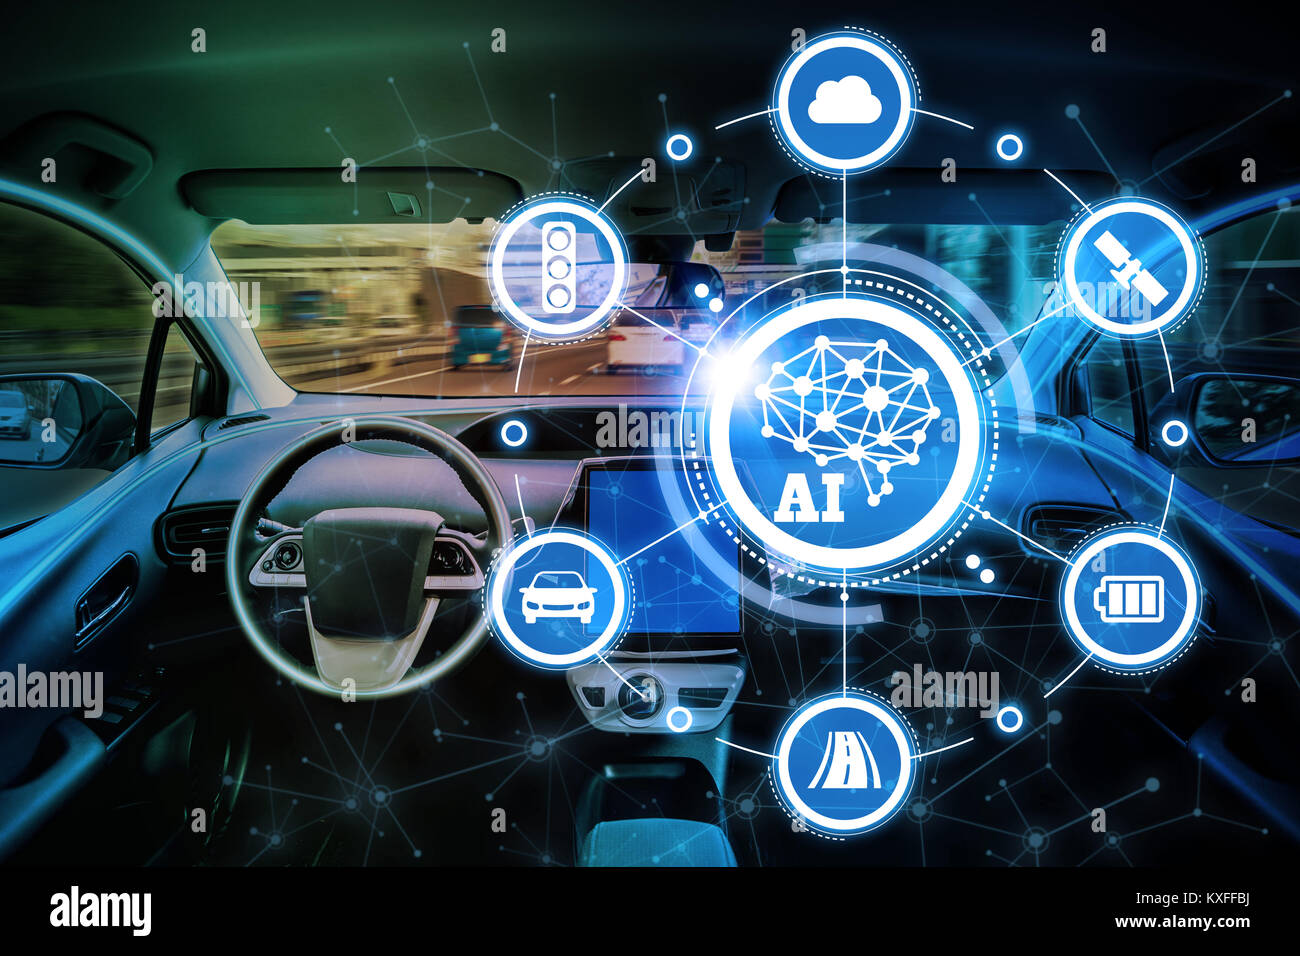 AI(l'intelligence artificielle et la technologie automobile. Voiture autonome. Photo Stock